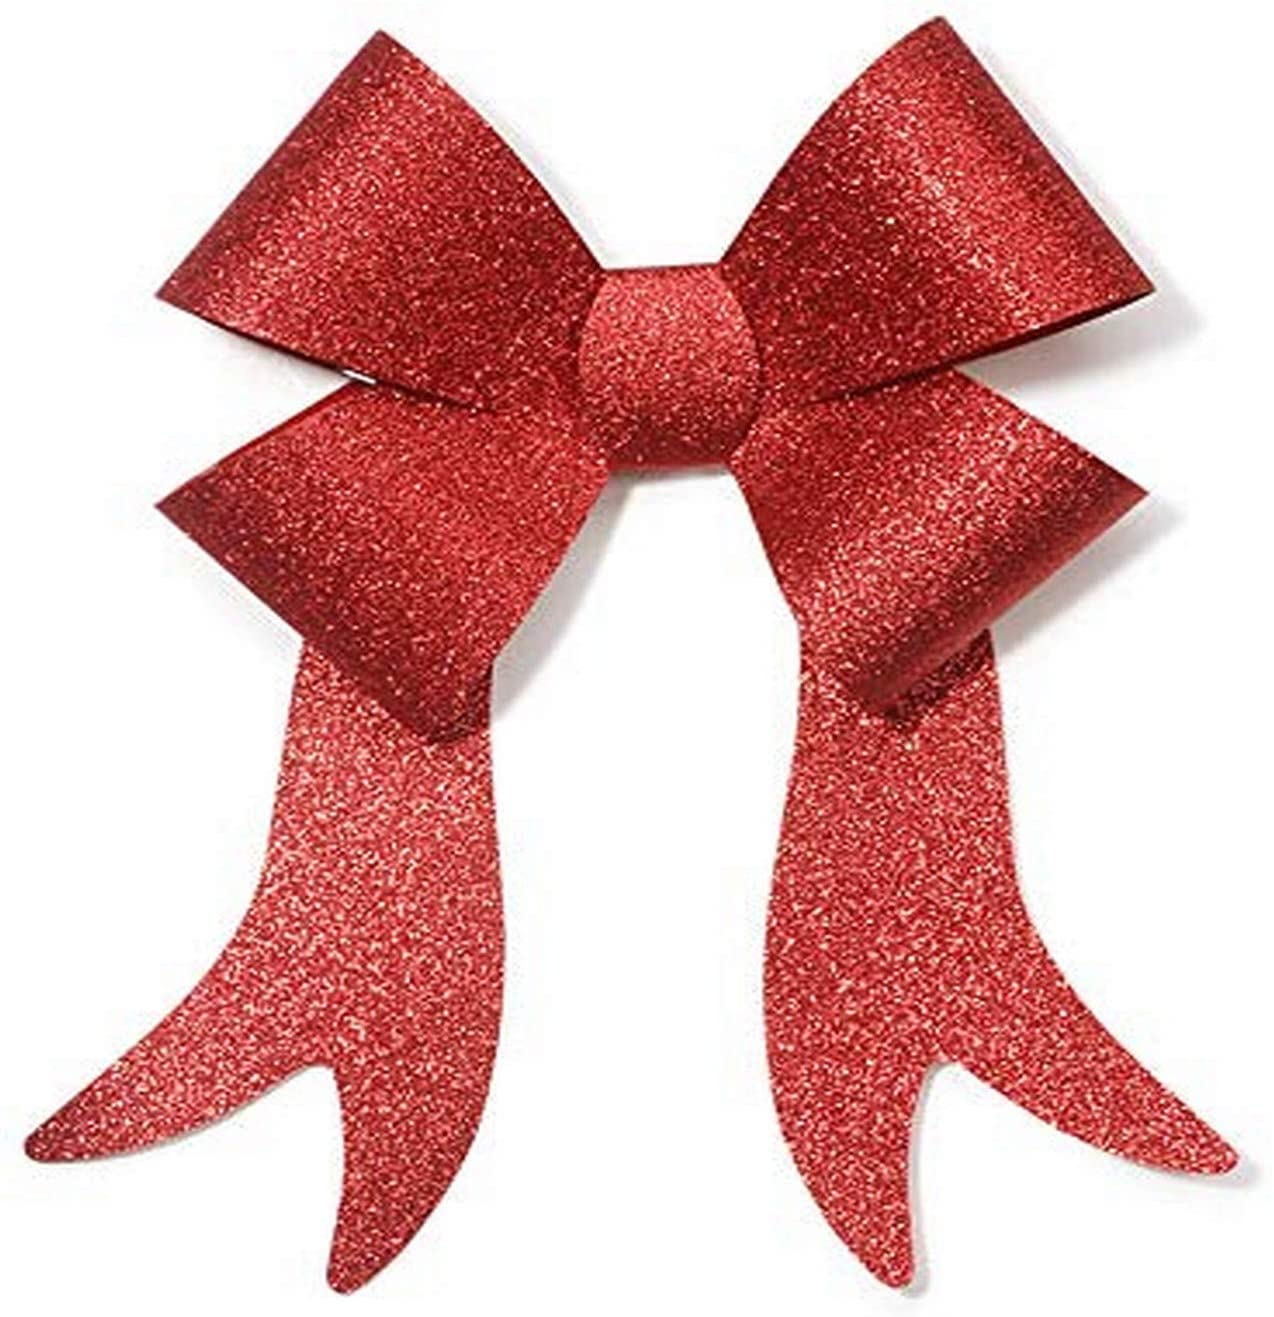 ArtVerse Holiday Bow-PVC-Red Glitter-9 x 15 inches (1 Pack)